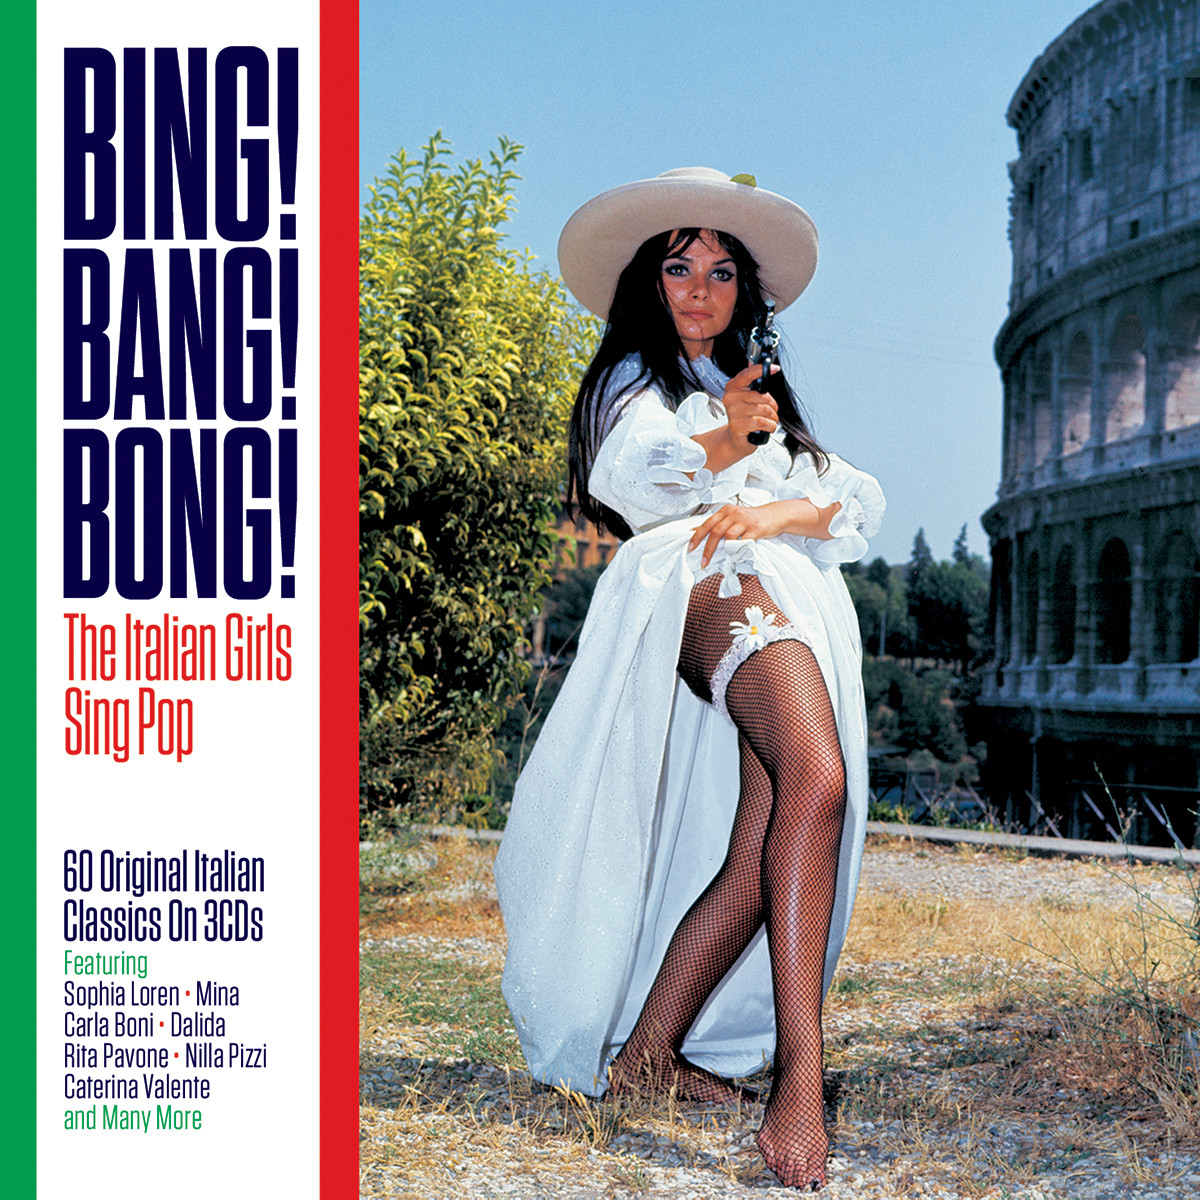 Bing bang bong the italian girls sing pop - Franca raimondi aprite le finestre ...